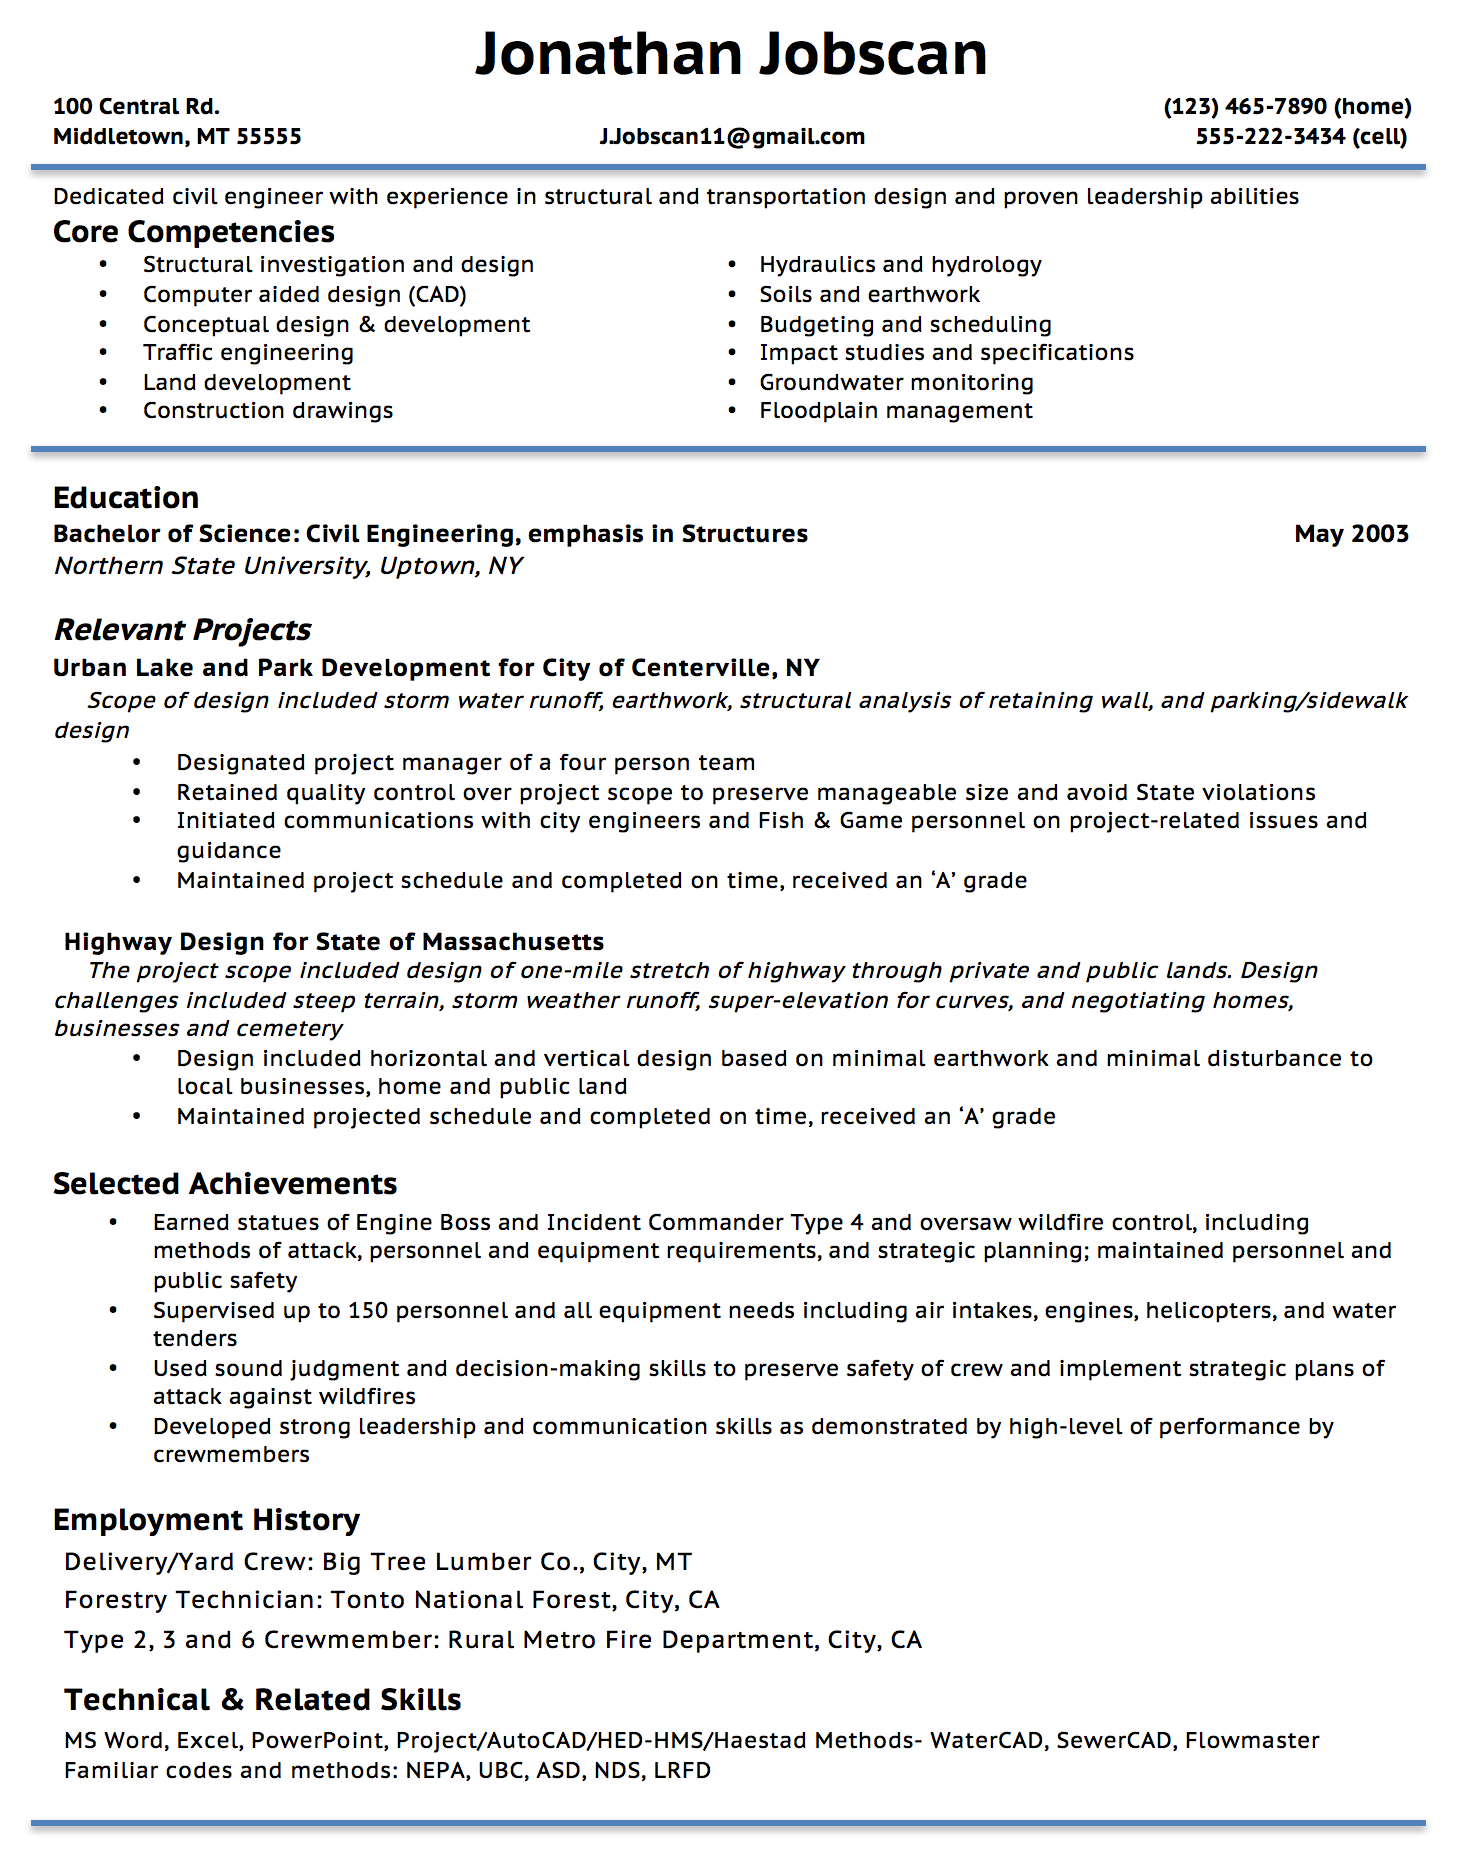 Opposenewapstandardsus  Inspiring Resume Writing Guide  Jobscan With Entrancing Example Of A Functional Resume Format With Enchanting Illustration Resume Also Rn Case Manager Resume In Addition Search Resumes Indeed And Job Resume Examples For High School Students As Well As Build My Own Resume Additionally Nurse Case Manager Resume From Jobscanco With Opposenewapstandardsus  Entrancing Resume Writing Guide  Jobscan With Enchanting Example Of A Functional Resume Format And Inspiring Illustration Resume Also Rn Case Manager Resume In Addition Search Resumes Indeed From Jobscanco